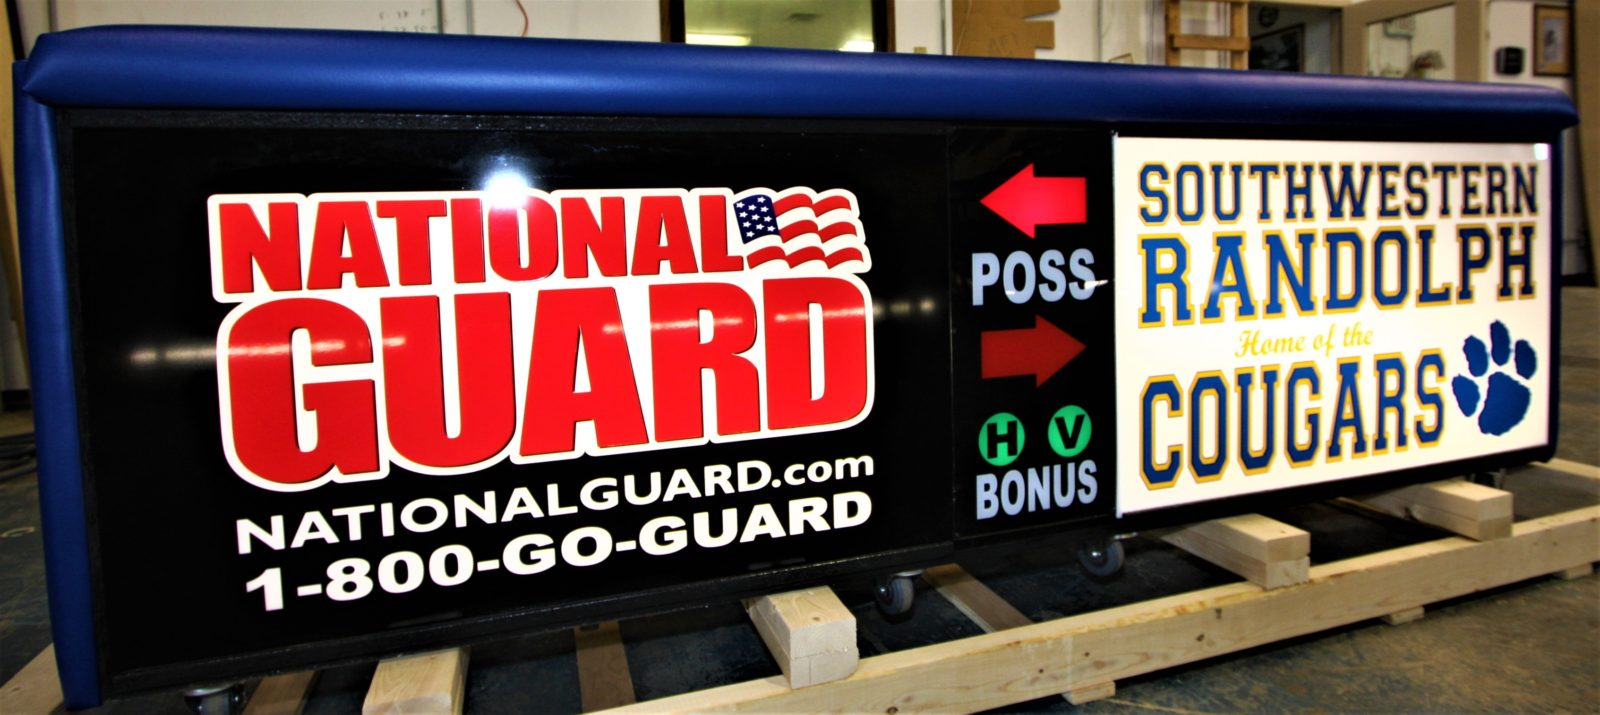 Southwestern high school scoring table North Carolina Army National Guard NCARNG